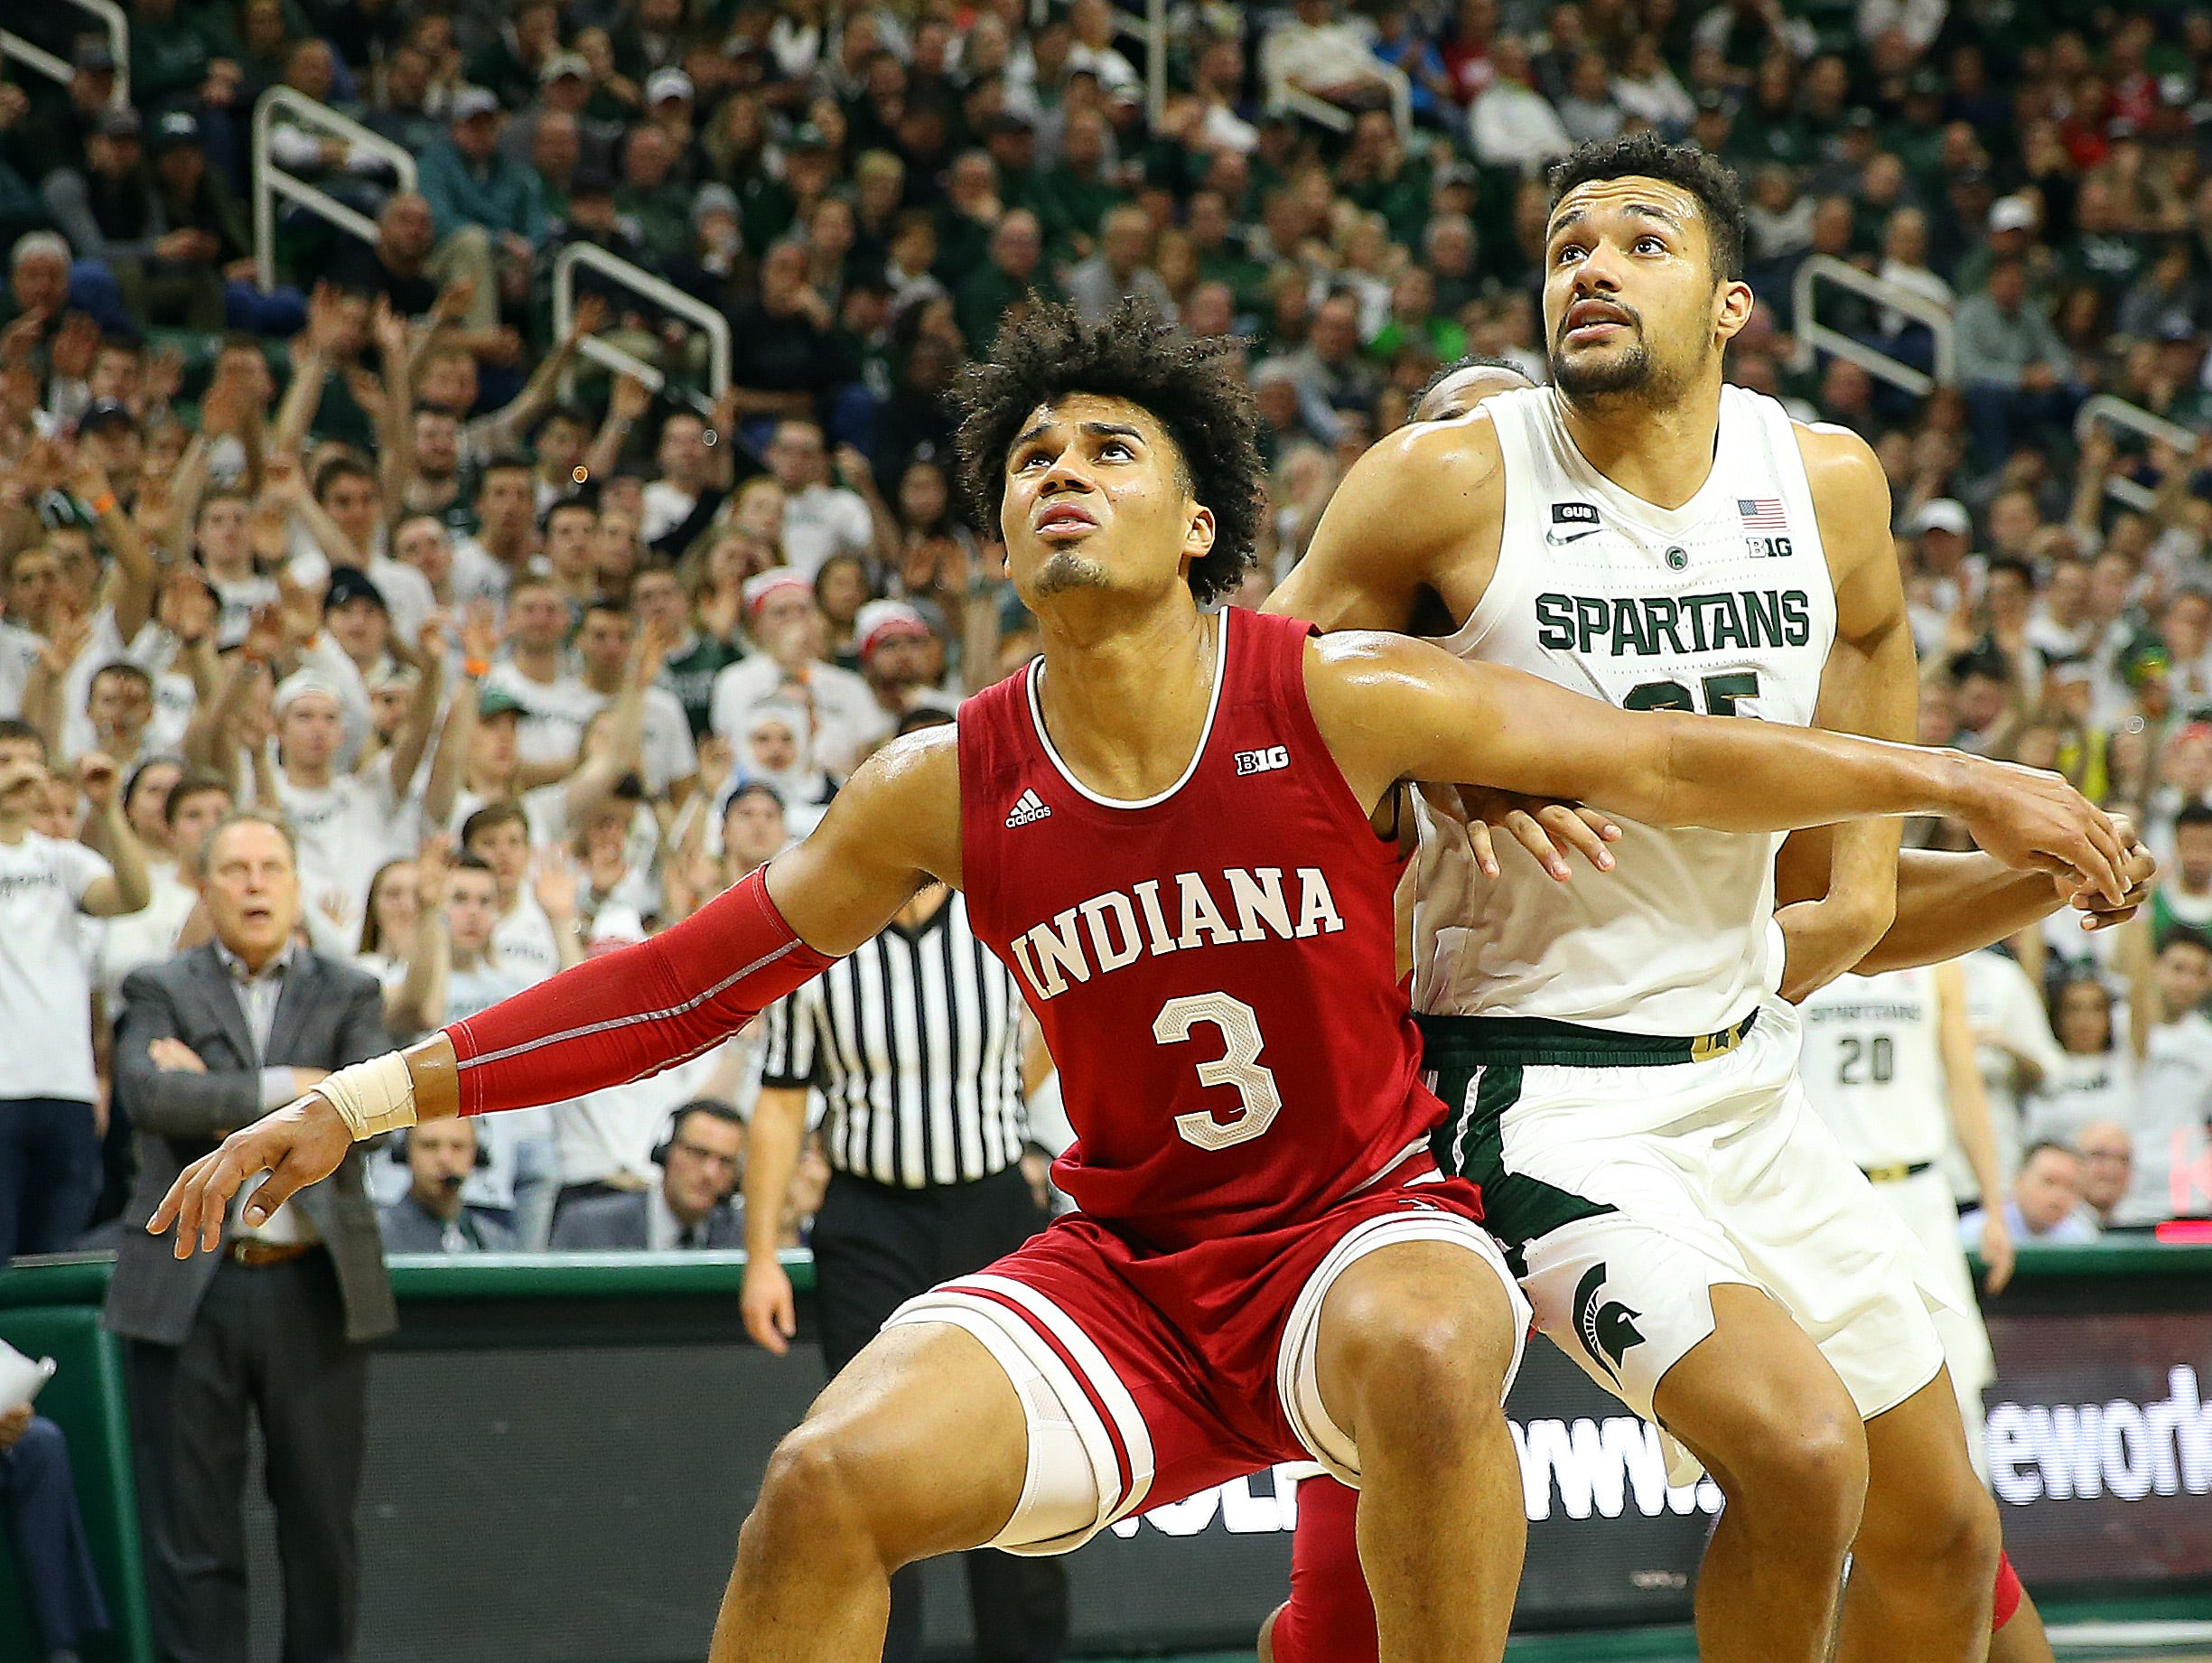 Feb 2, 2019; East Lansing, MI, USA; Indiana Hoosiers forward Justin Smith (3) and Michigan State Spartans forward Kenny Goins (25) fight for position during the second half of a game at the Breslin Center. Mandatory Credit: Mike Carter-USA TODAY Sports